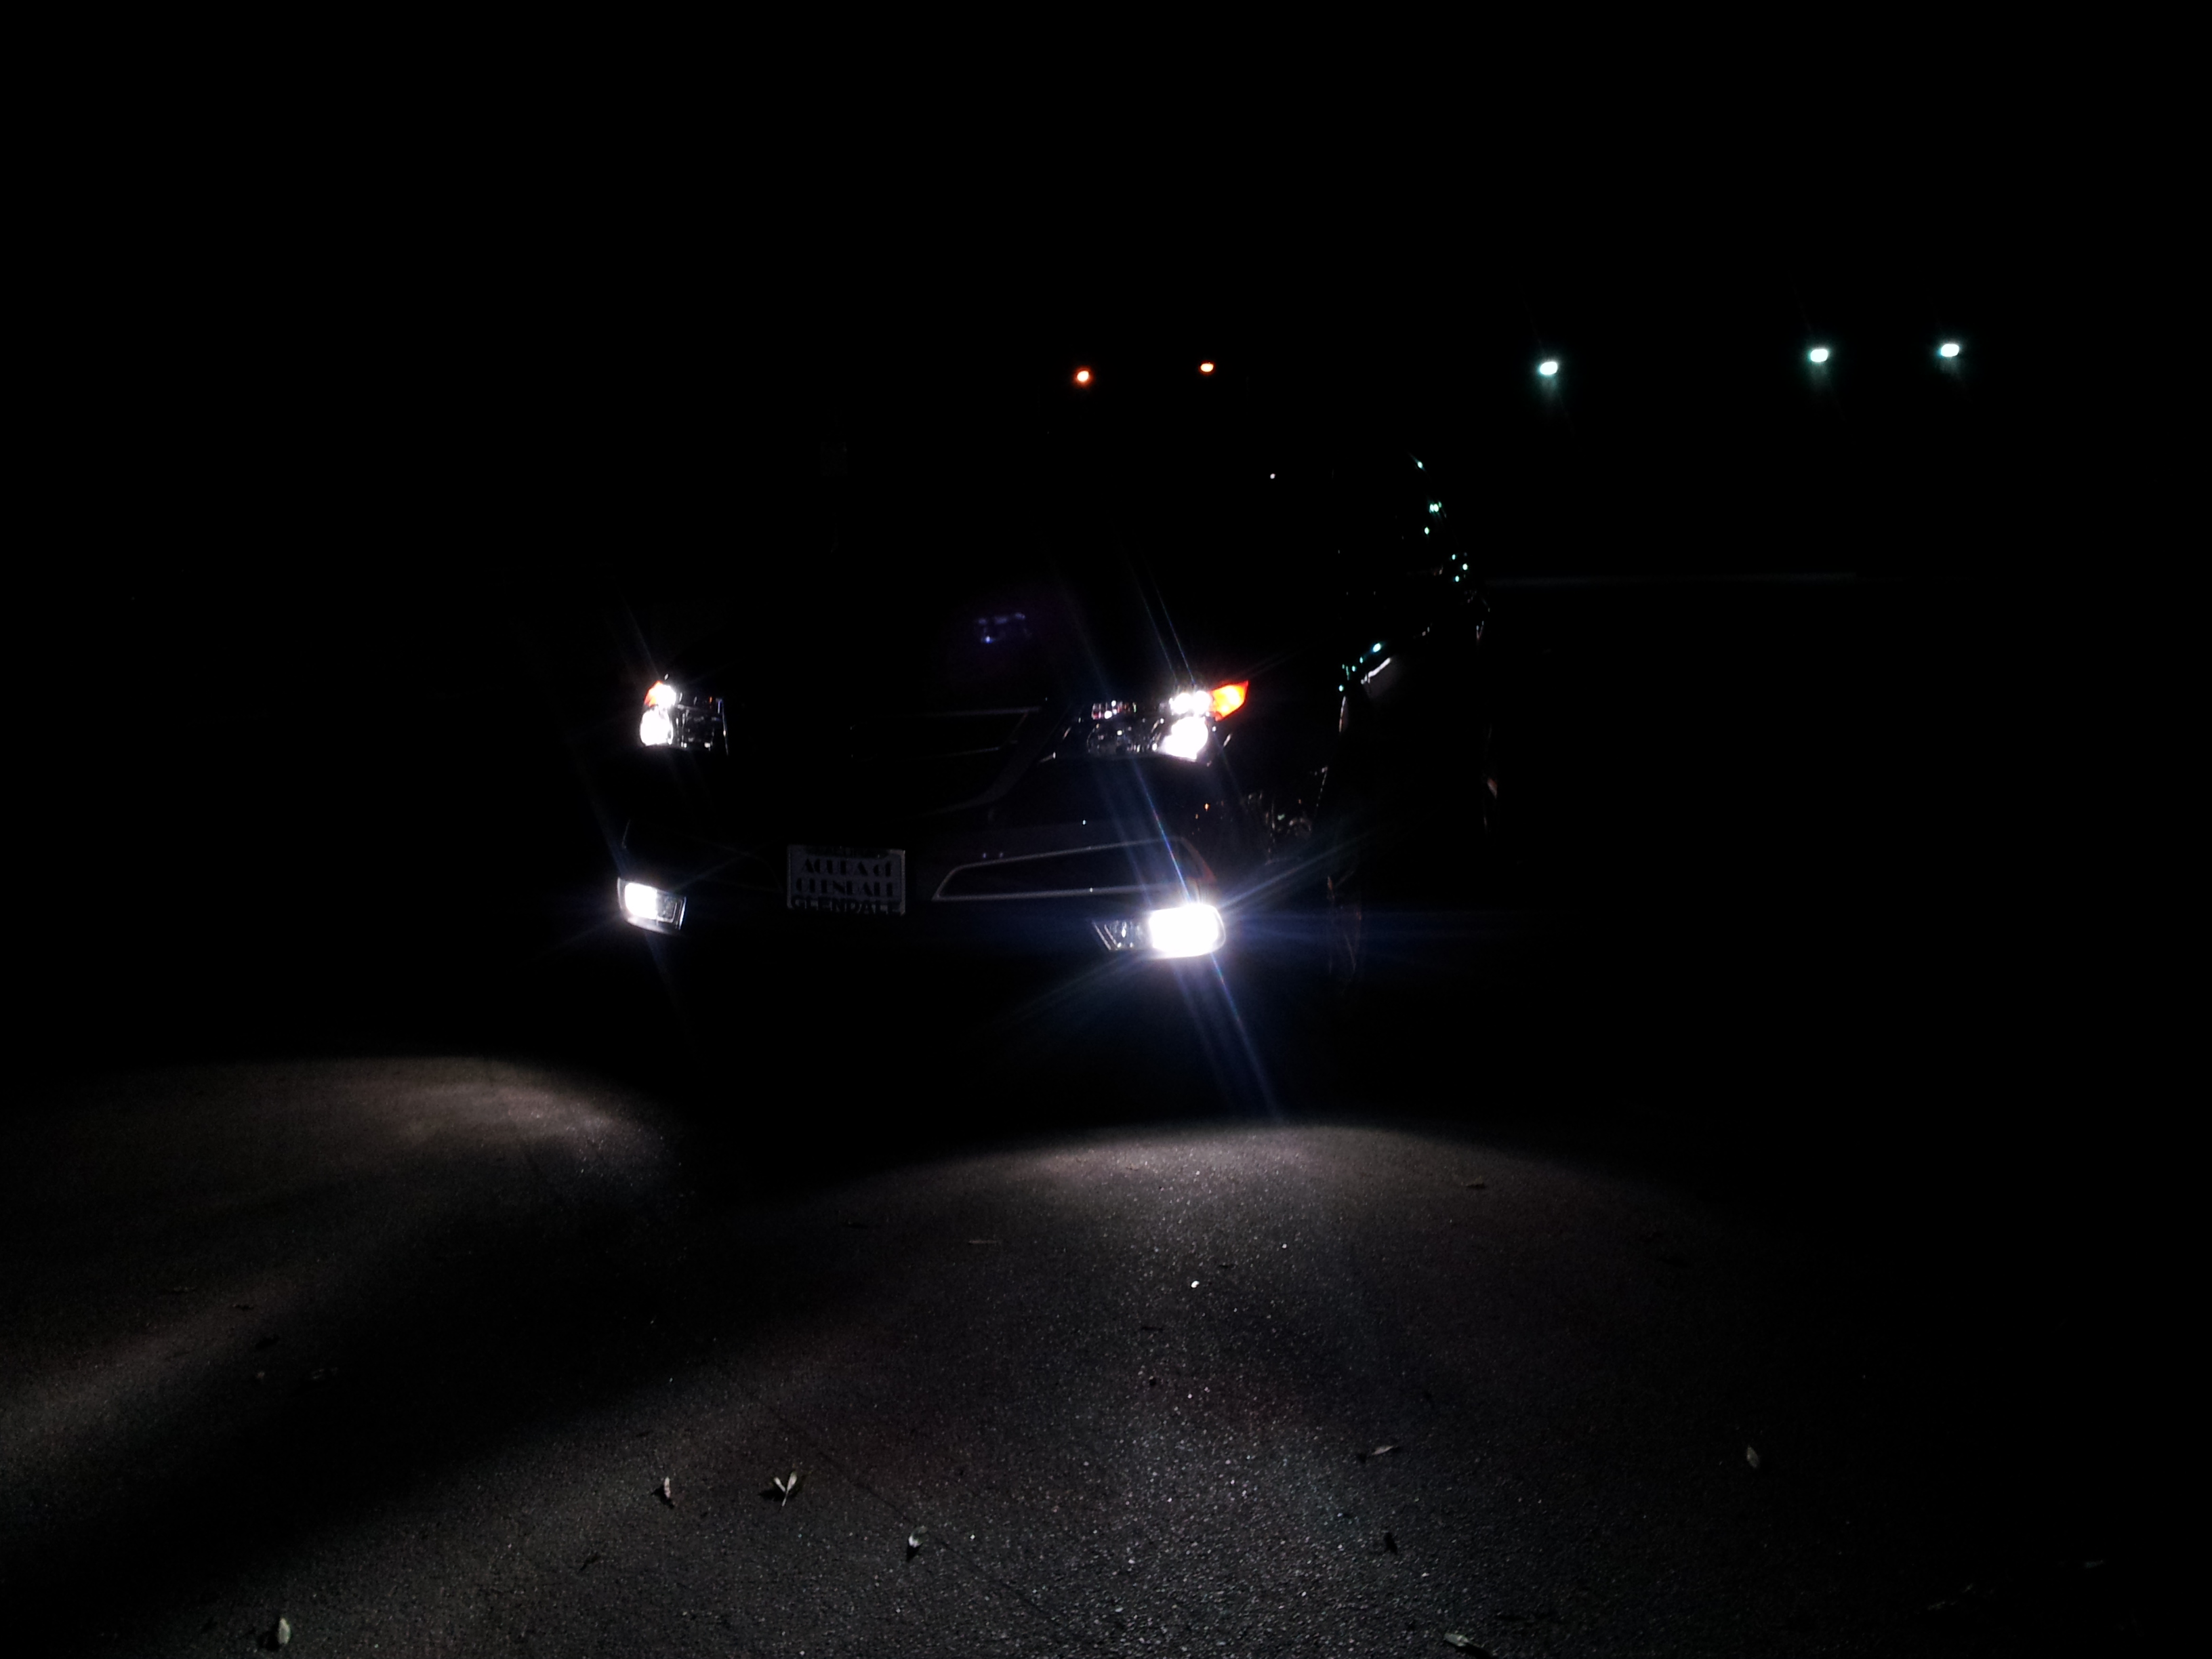 HID Fog/LED DRL Installed - PICS-20121025_214422.jpg